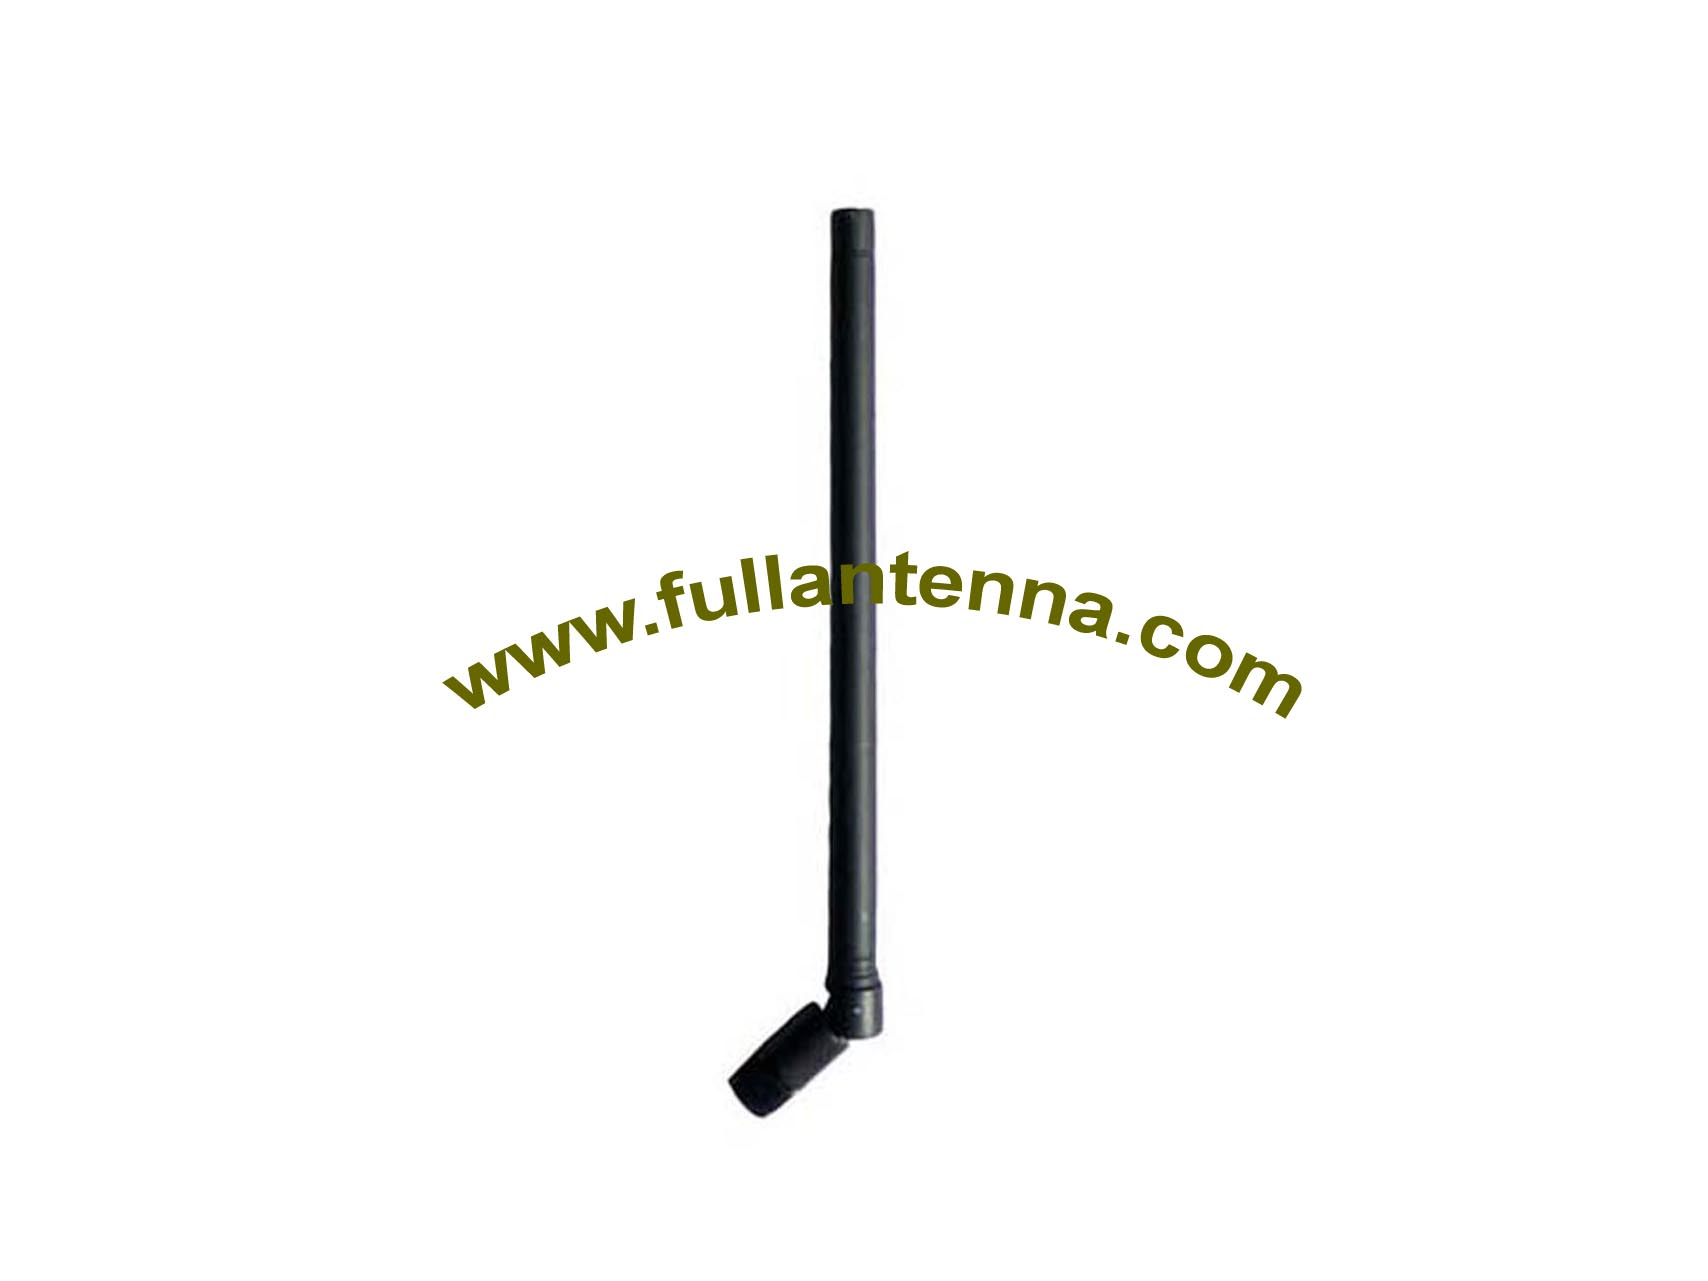 P/N:FAGSM02.09,GSM Rubber Antenna, SMA male 3dbi